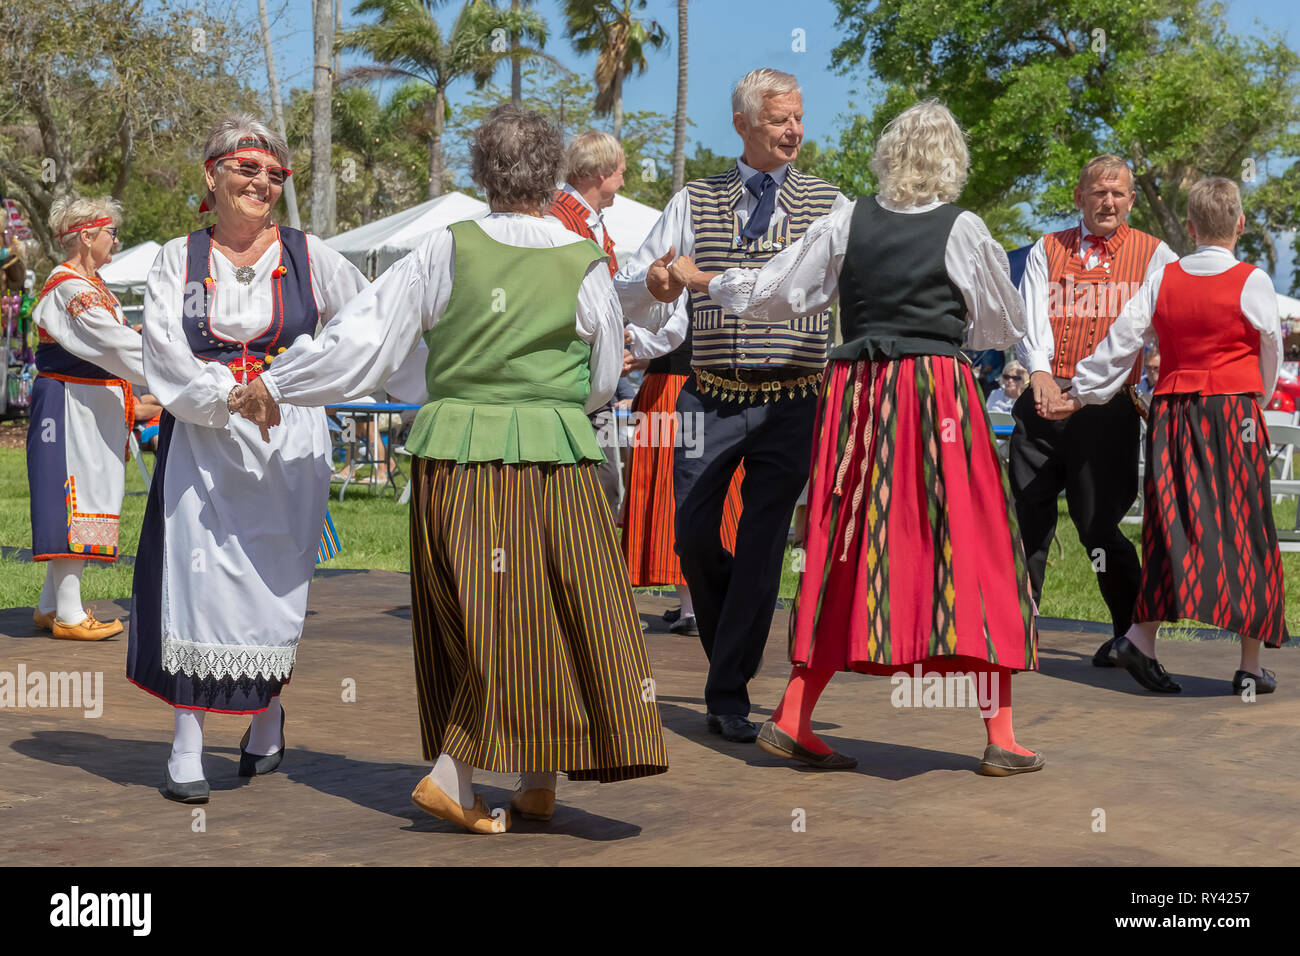 Lake Worth, Florida, USA March 3, 2019 Midnight Sun Festival Celebrating Finnish Culture. The men are coupled with women while two ladies are coupled. - Stock Image